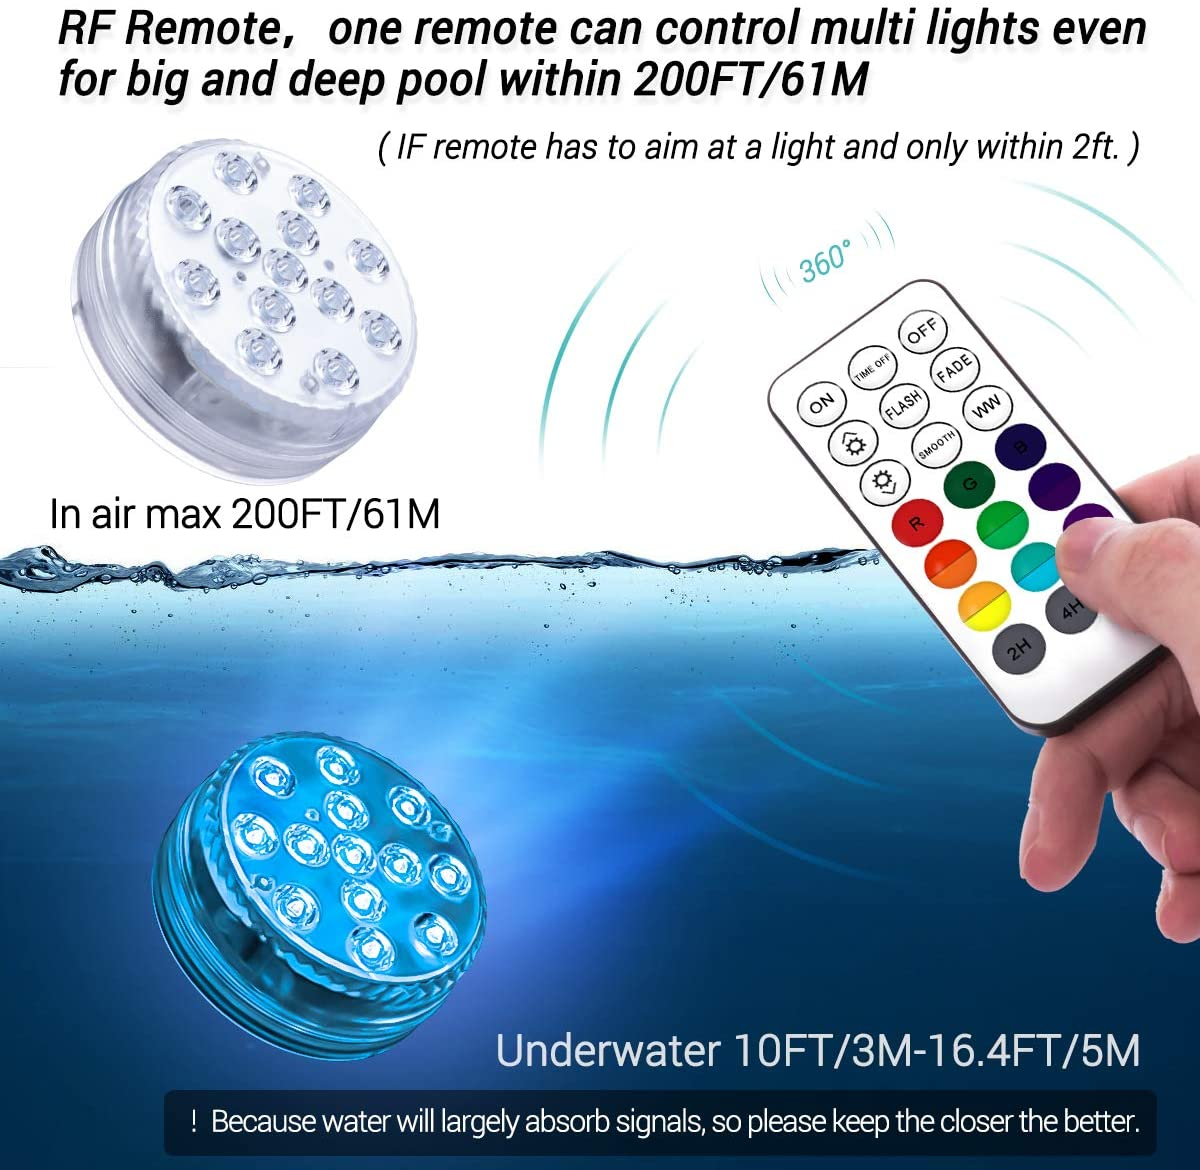 💥SUMMER SALE💥Waterproof LED Pool Lights Remote Control&Home decorations(RF)